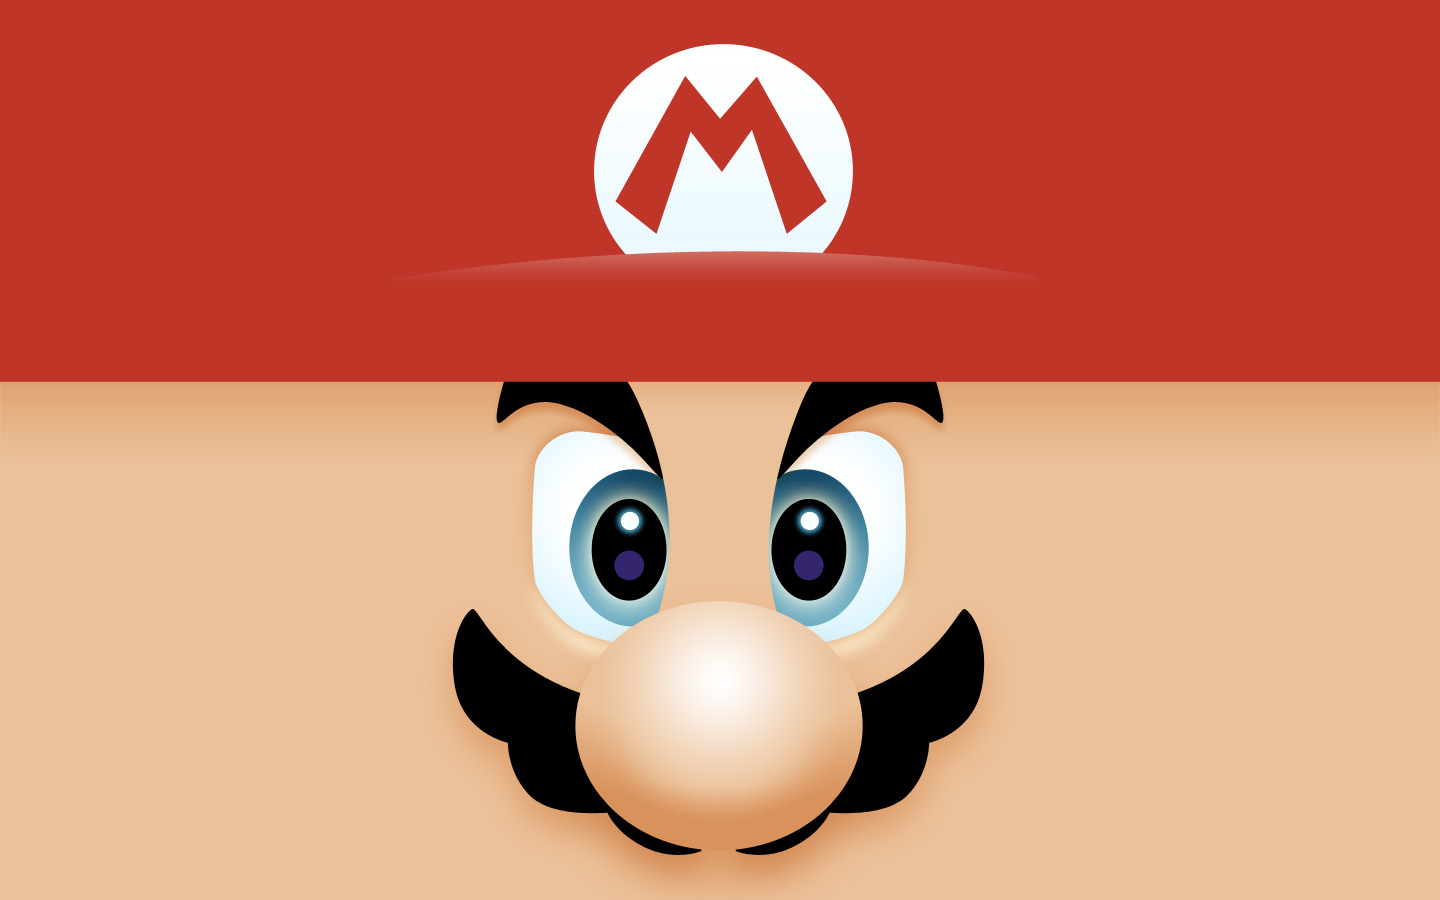 Bross'net Mario Bross Digital Hd 1440x900 Imagenes Wallpapers